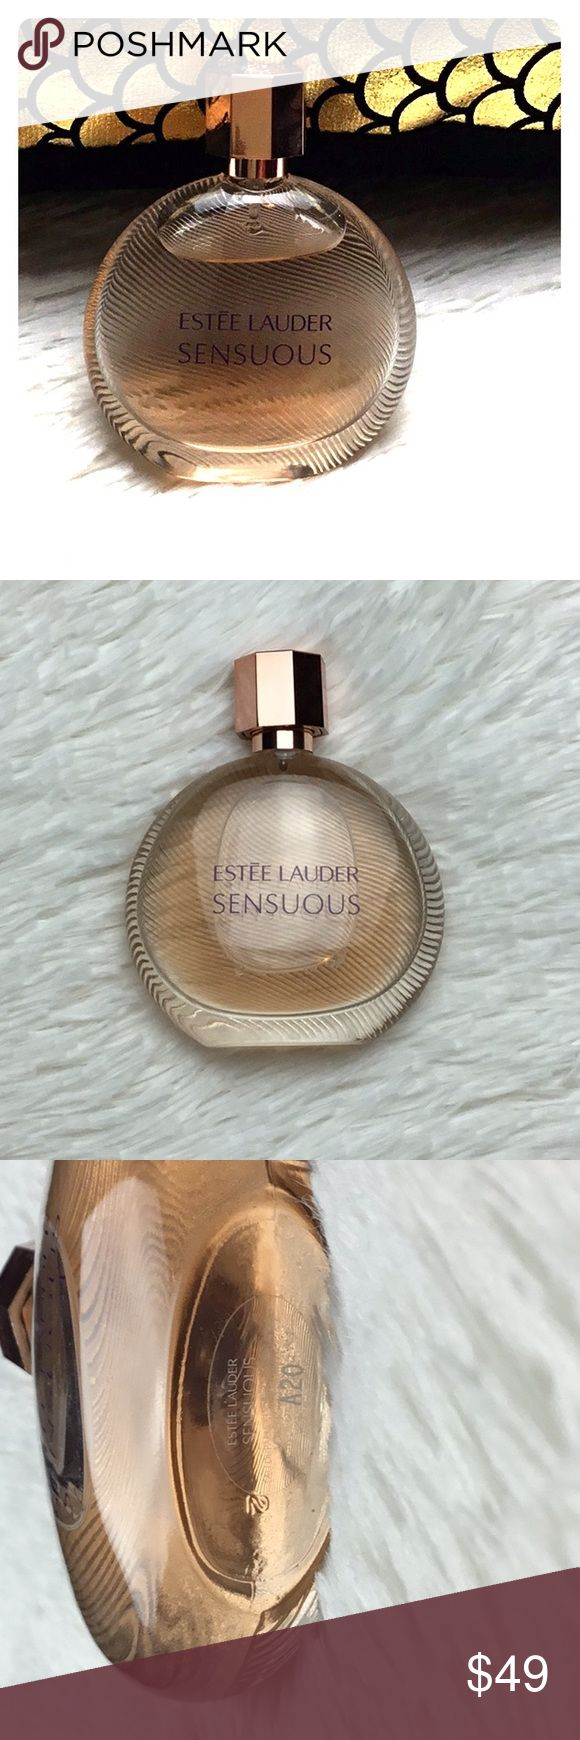 Estée Lauder Sensuous perfume 1.7 oz new women's Estée Lauder Sensuous Perfume Retail $69 1.7 oz A modern definition of sensuality. Confident and elegant. A rich core of Molten Woods and Amber, surrounded by atmospheric florals, warmed by a hint of Pepper and a touch of Honey.  Warm Notes: Molten Woods, Amber  Feminine Notes: Jasmine, Ghost Lily, Magnolia, Ylang  Luminous Notes: Black Pepper, Sandalwood, Honey, Mandarin Orange Pulp  No box included Use once but cannot use due to skin…